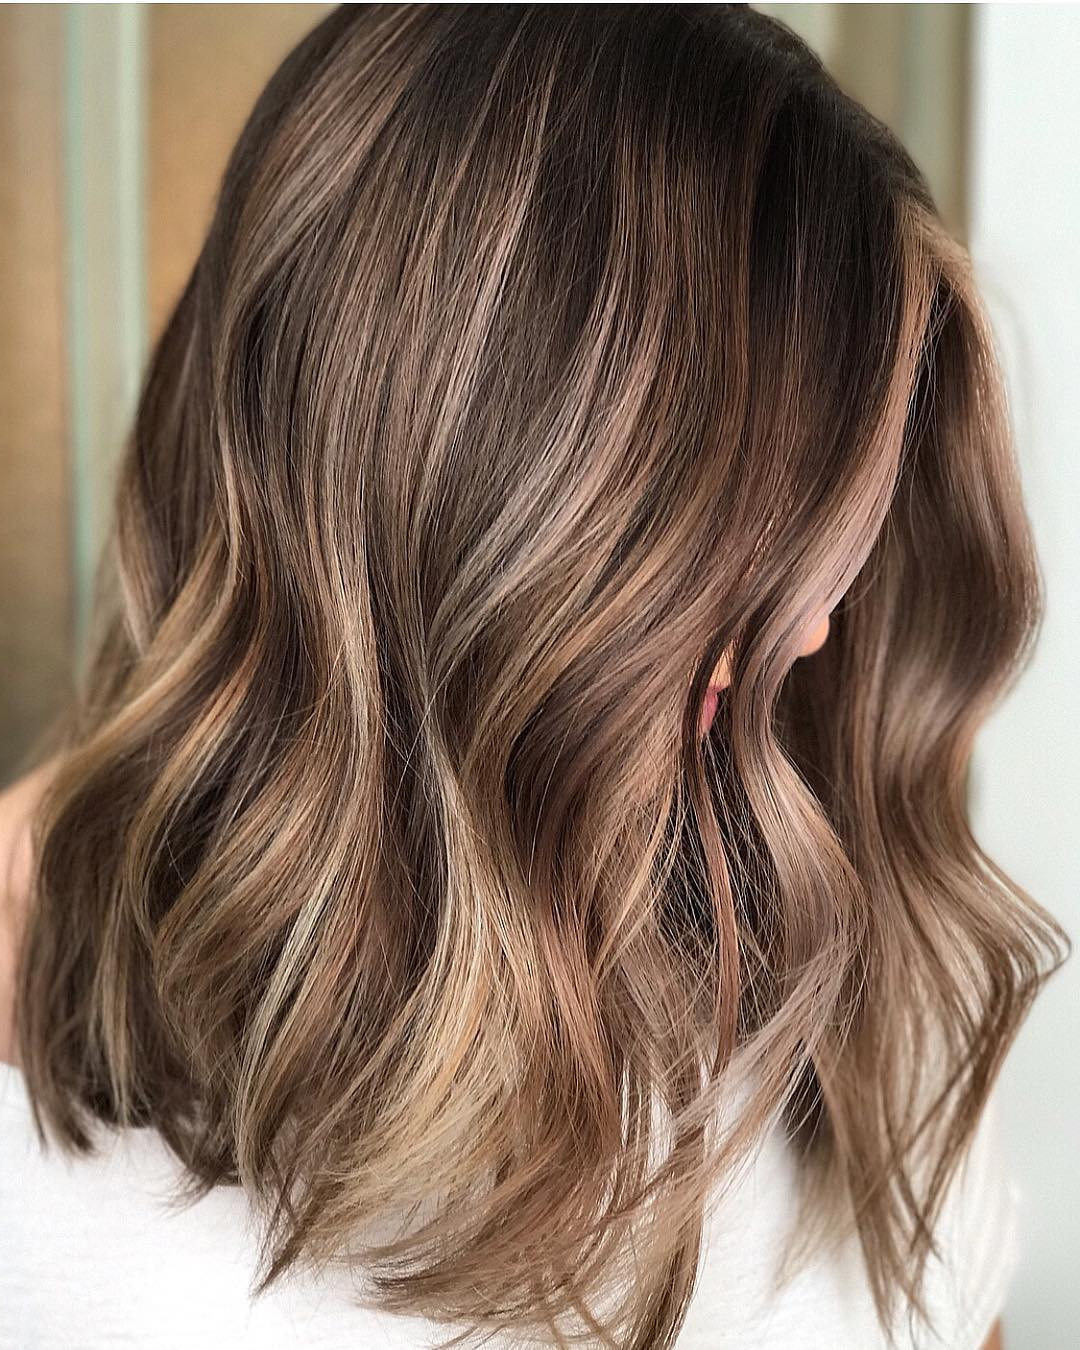 Popular Medium Hairstyles And Highlights Throughout 10 Trendy Brown Balayage Hairstyles For Medium Length Hair (View 13 of 20)